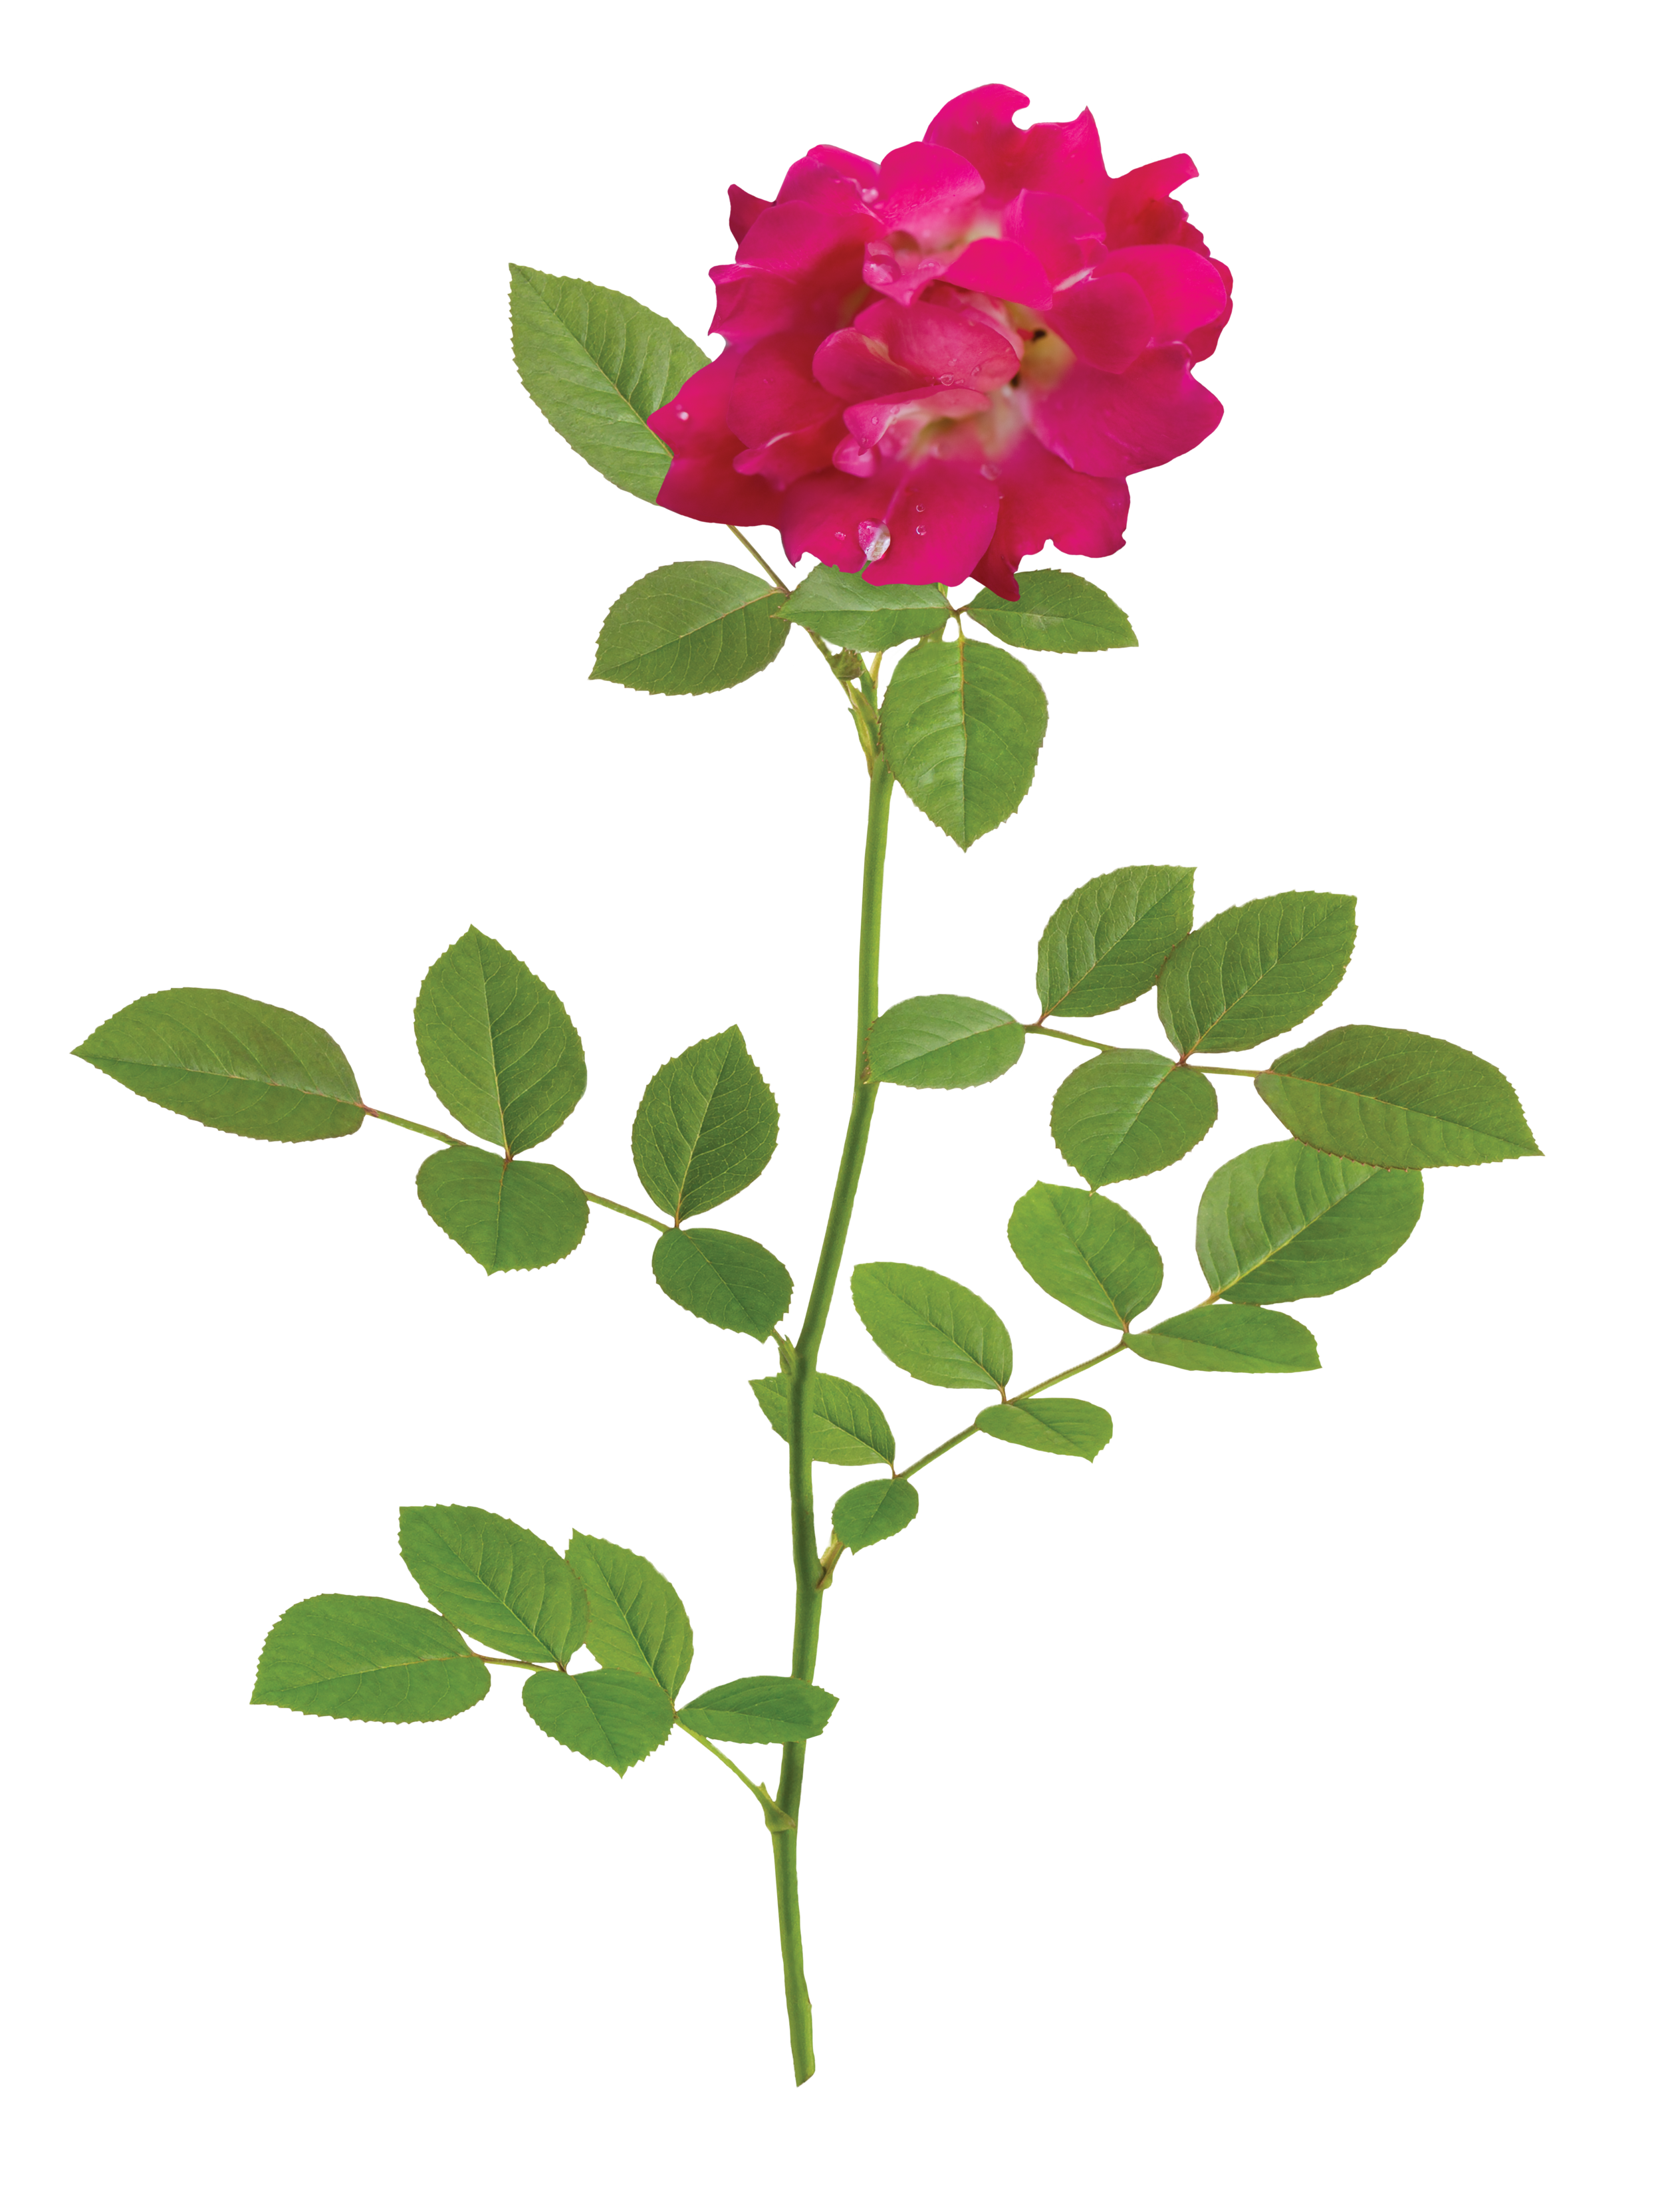 The Red Drift® Rose - 'Meigalpio' PP 17,877The easy nature and natural beauty of Red Drift® lends to the success of this rose. The petite red flowers prove to be an elegant addition to any garden, especially when able to naturally drape over a rock wall or edge.Zones: 4–11 | Exposure: Full sun | Habit: 1½' h x 2½' w